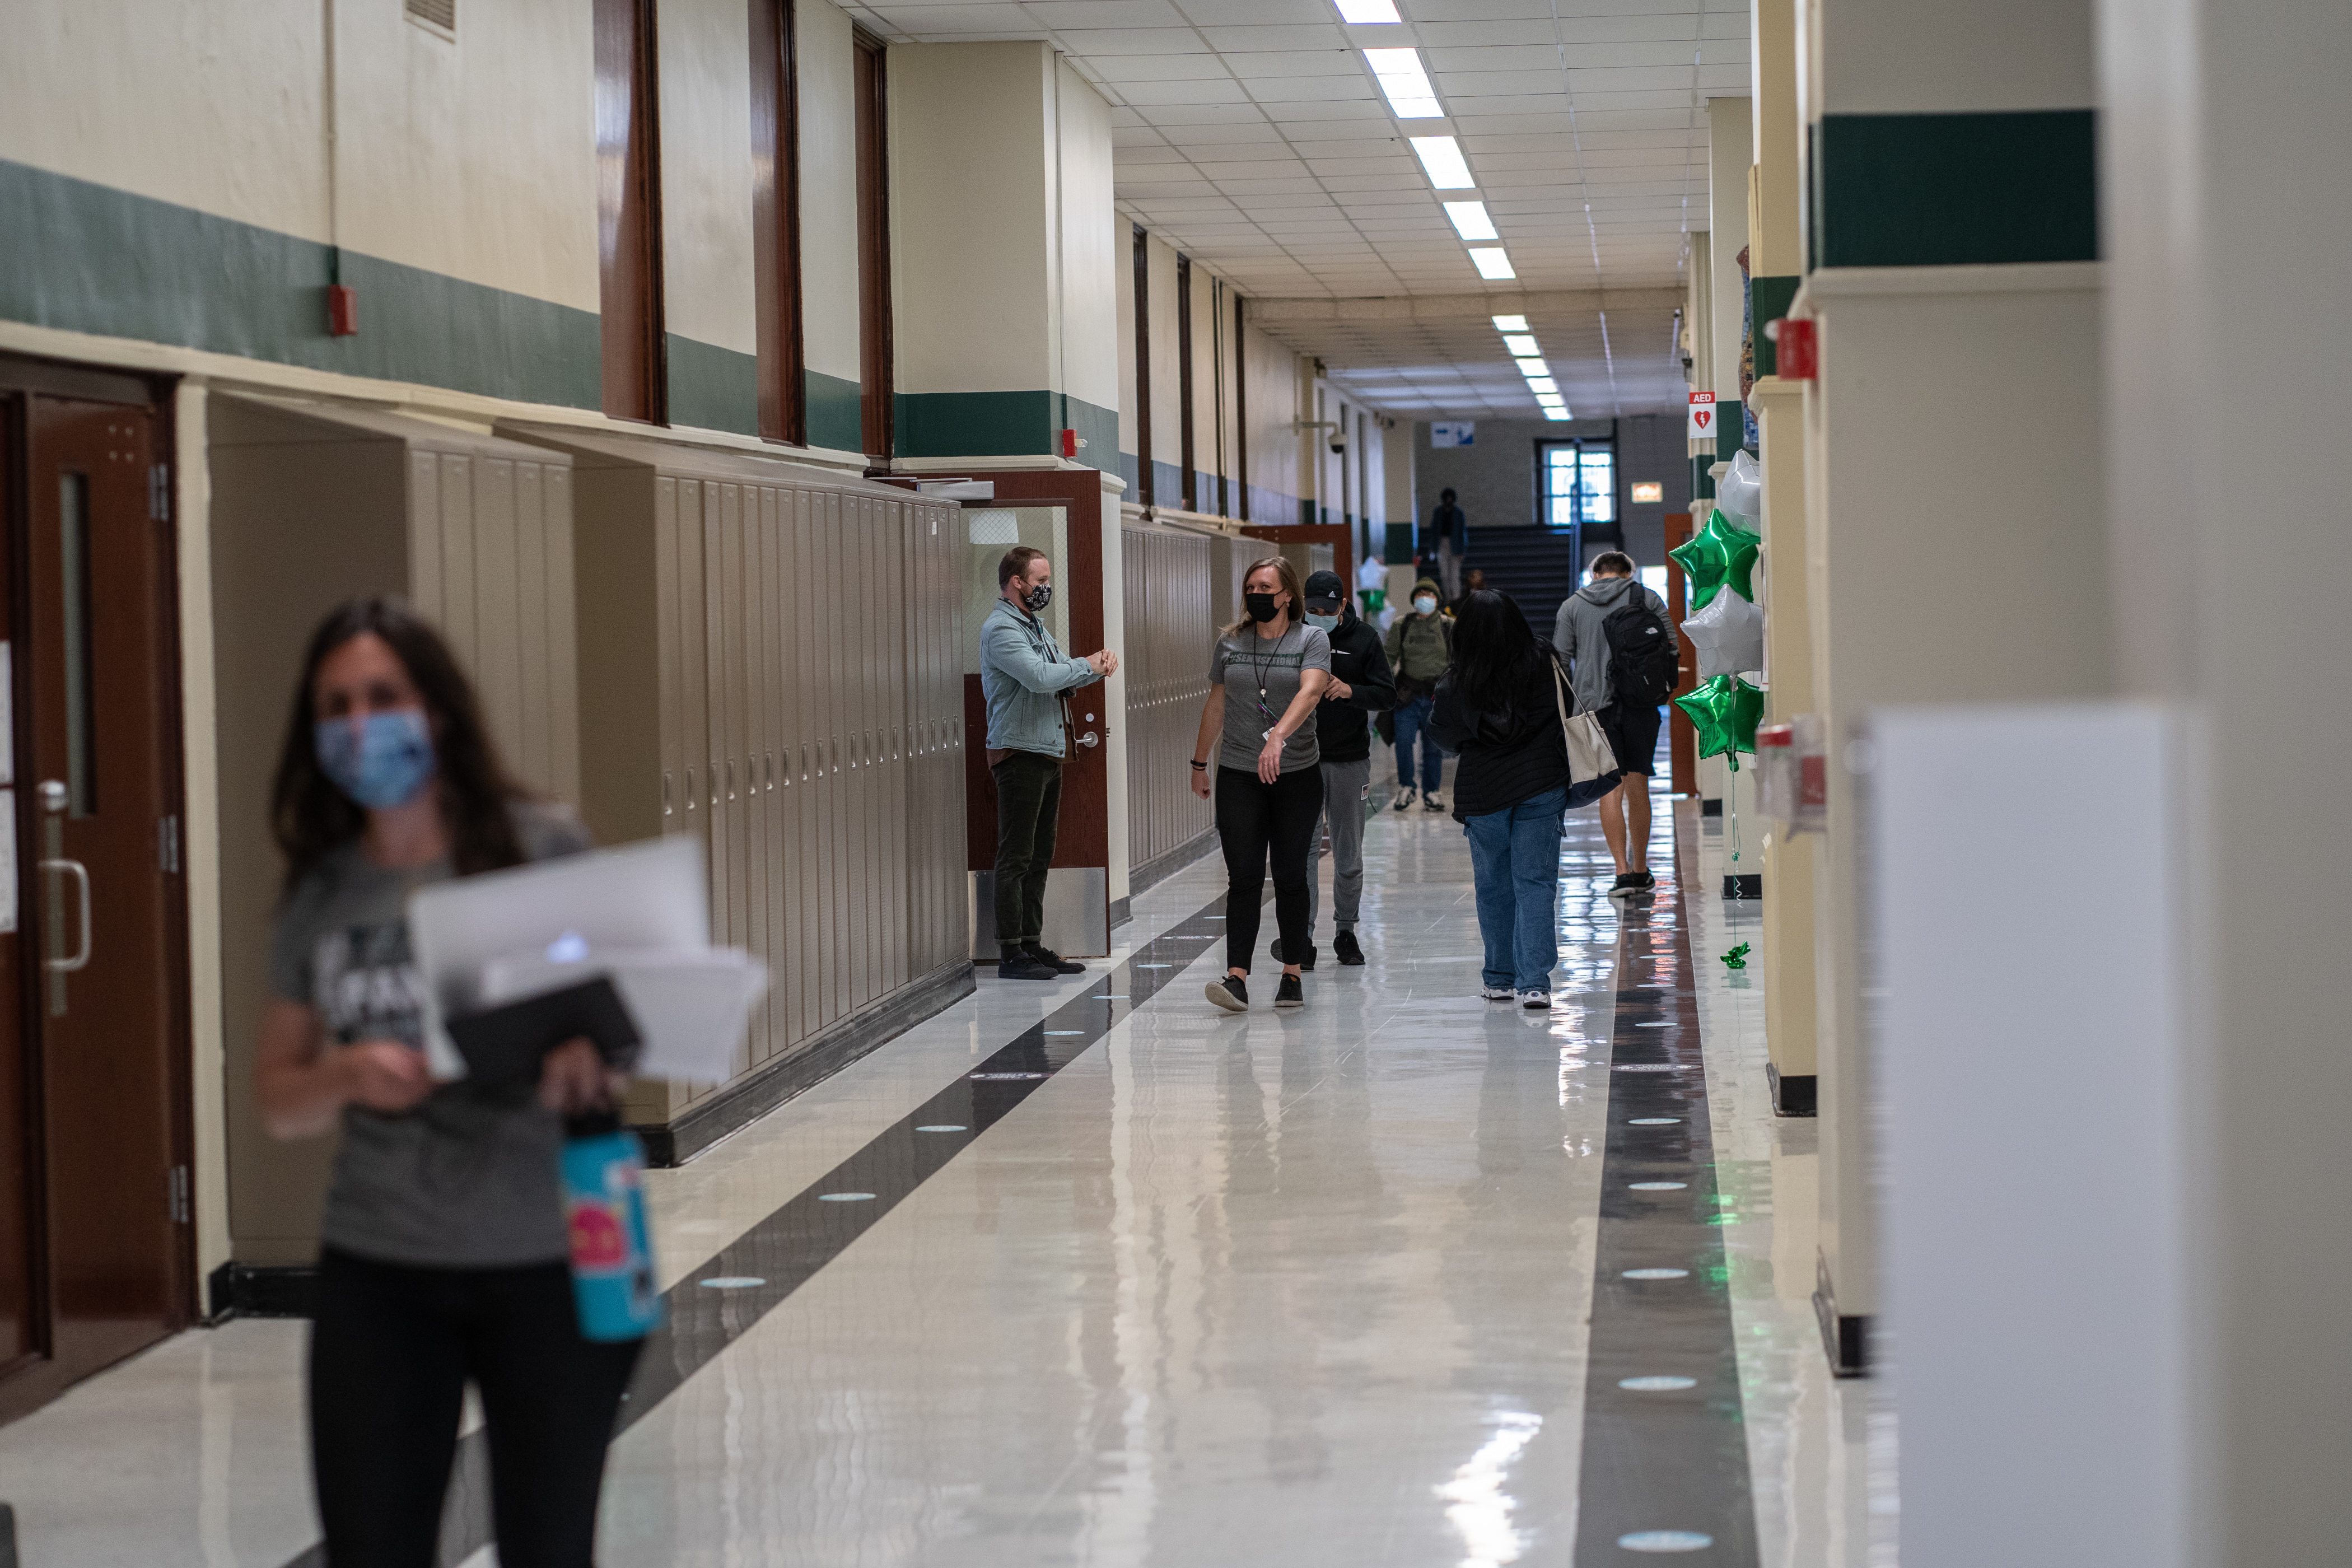 Staff and students walk the halls of Senn High School on the first week back to classrooms on April 23, 2021.